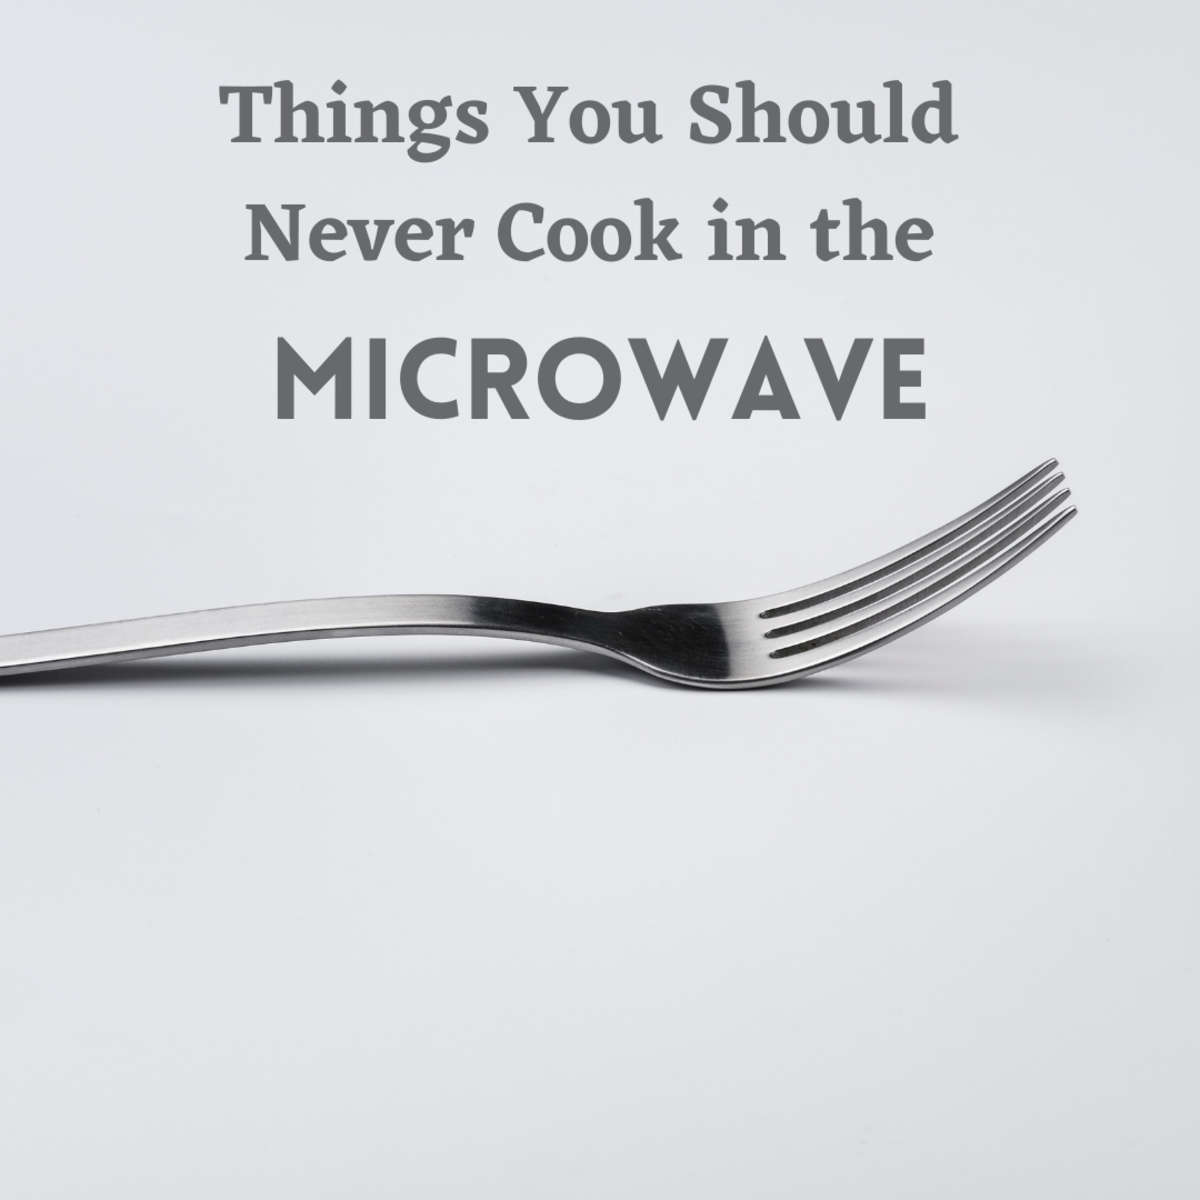 We all know about metal kitchen utensils, but what are some other things that shouldn't go inside the microwave?